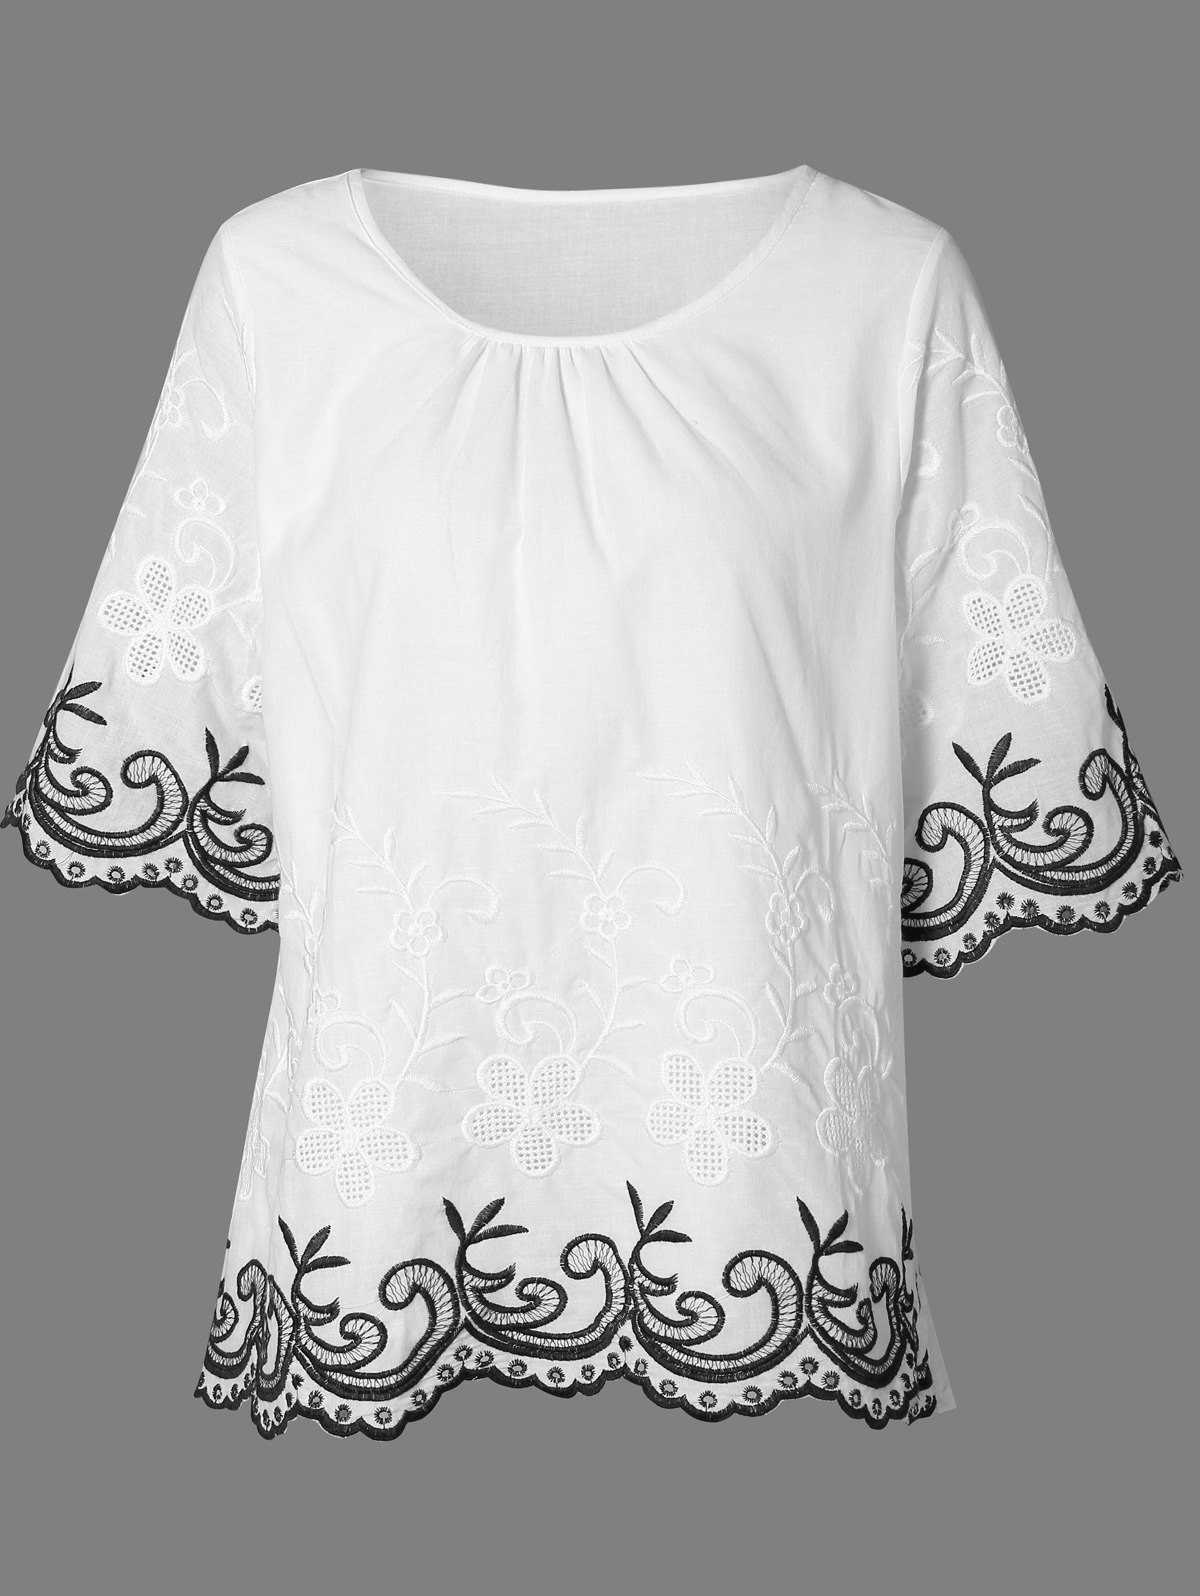 Jewel Neck 3/4 Sleeve Embroidery Blouse